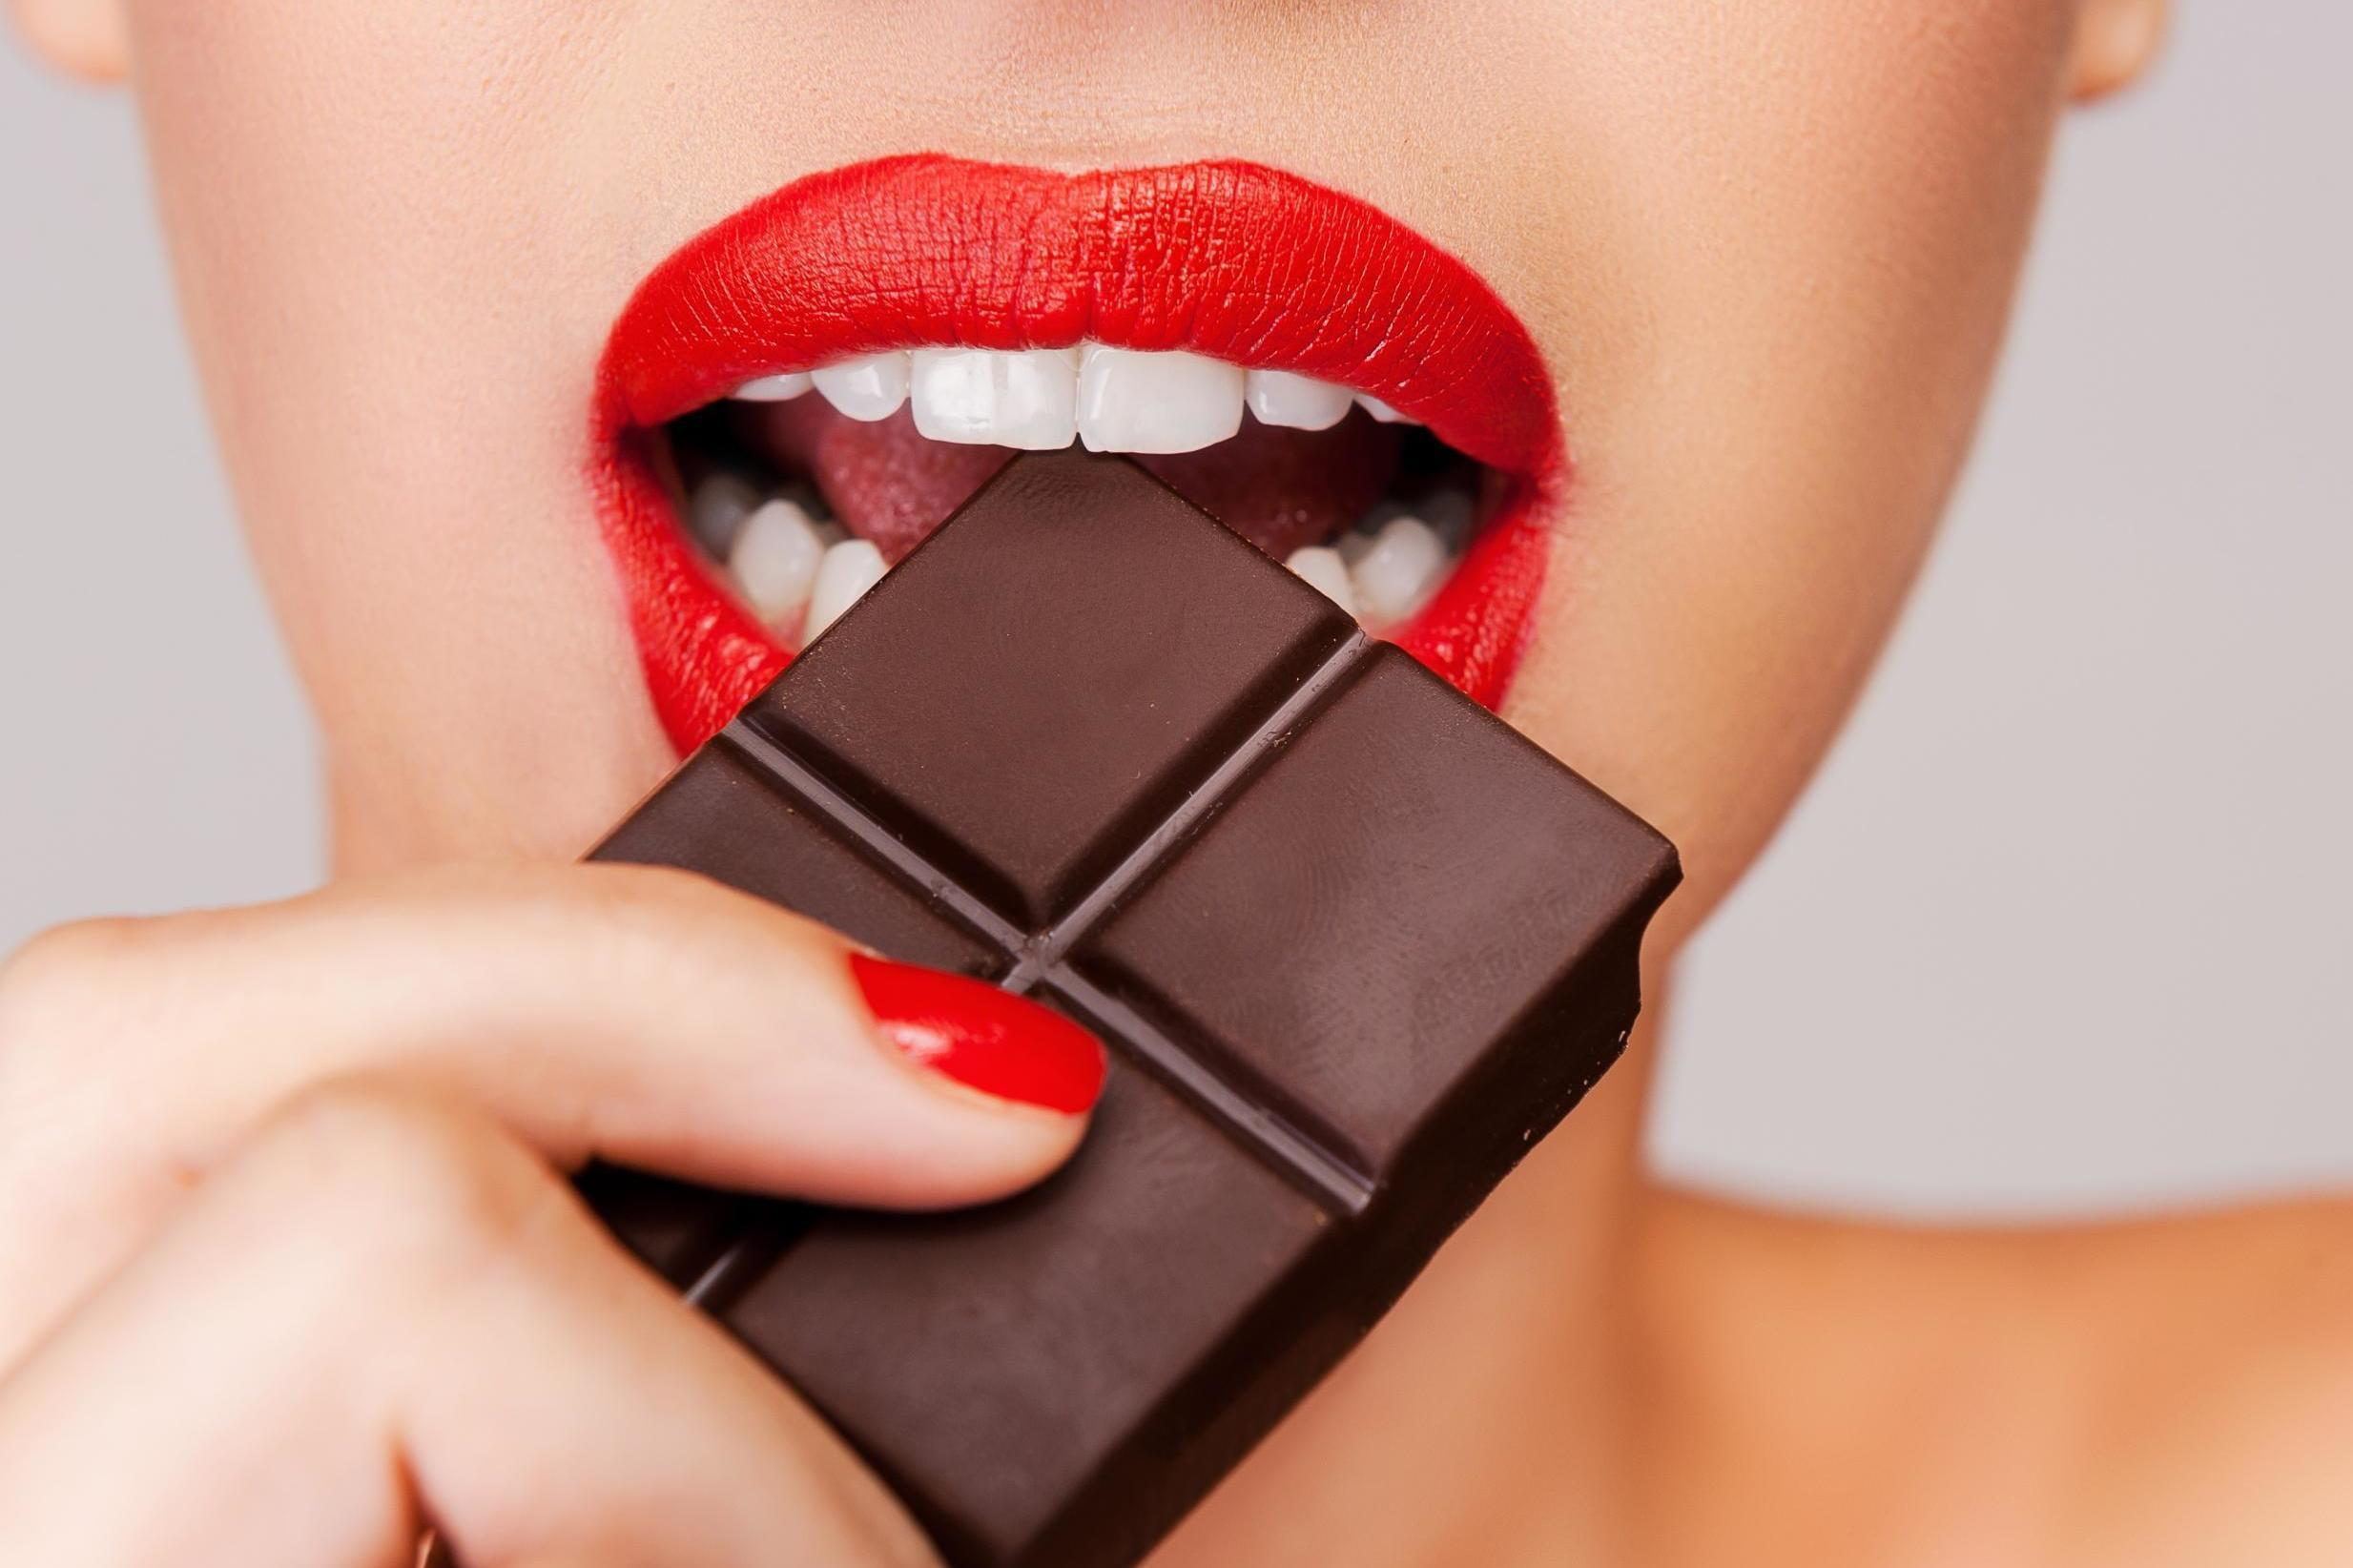 Eating Chocolate Can Reduce Stress Study Says The Independent